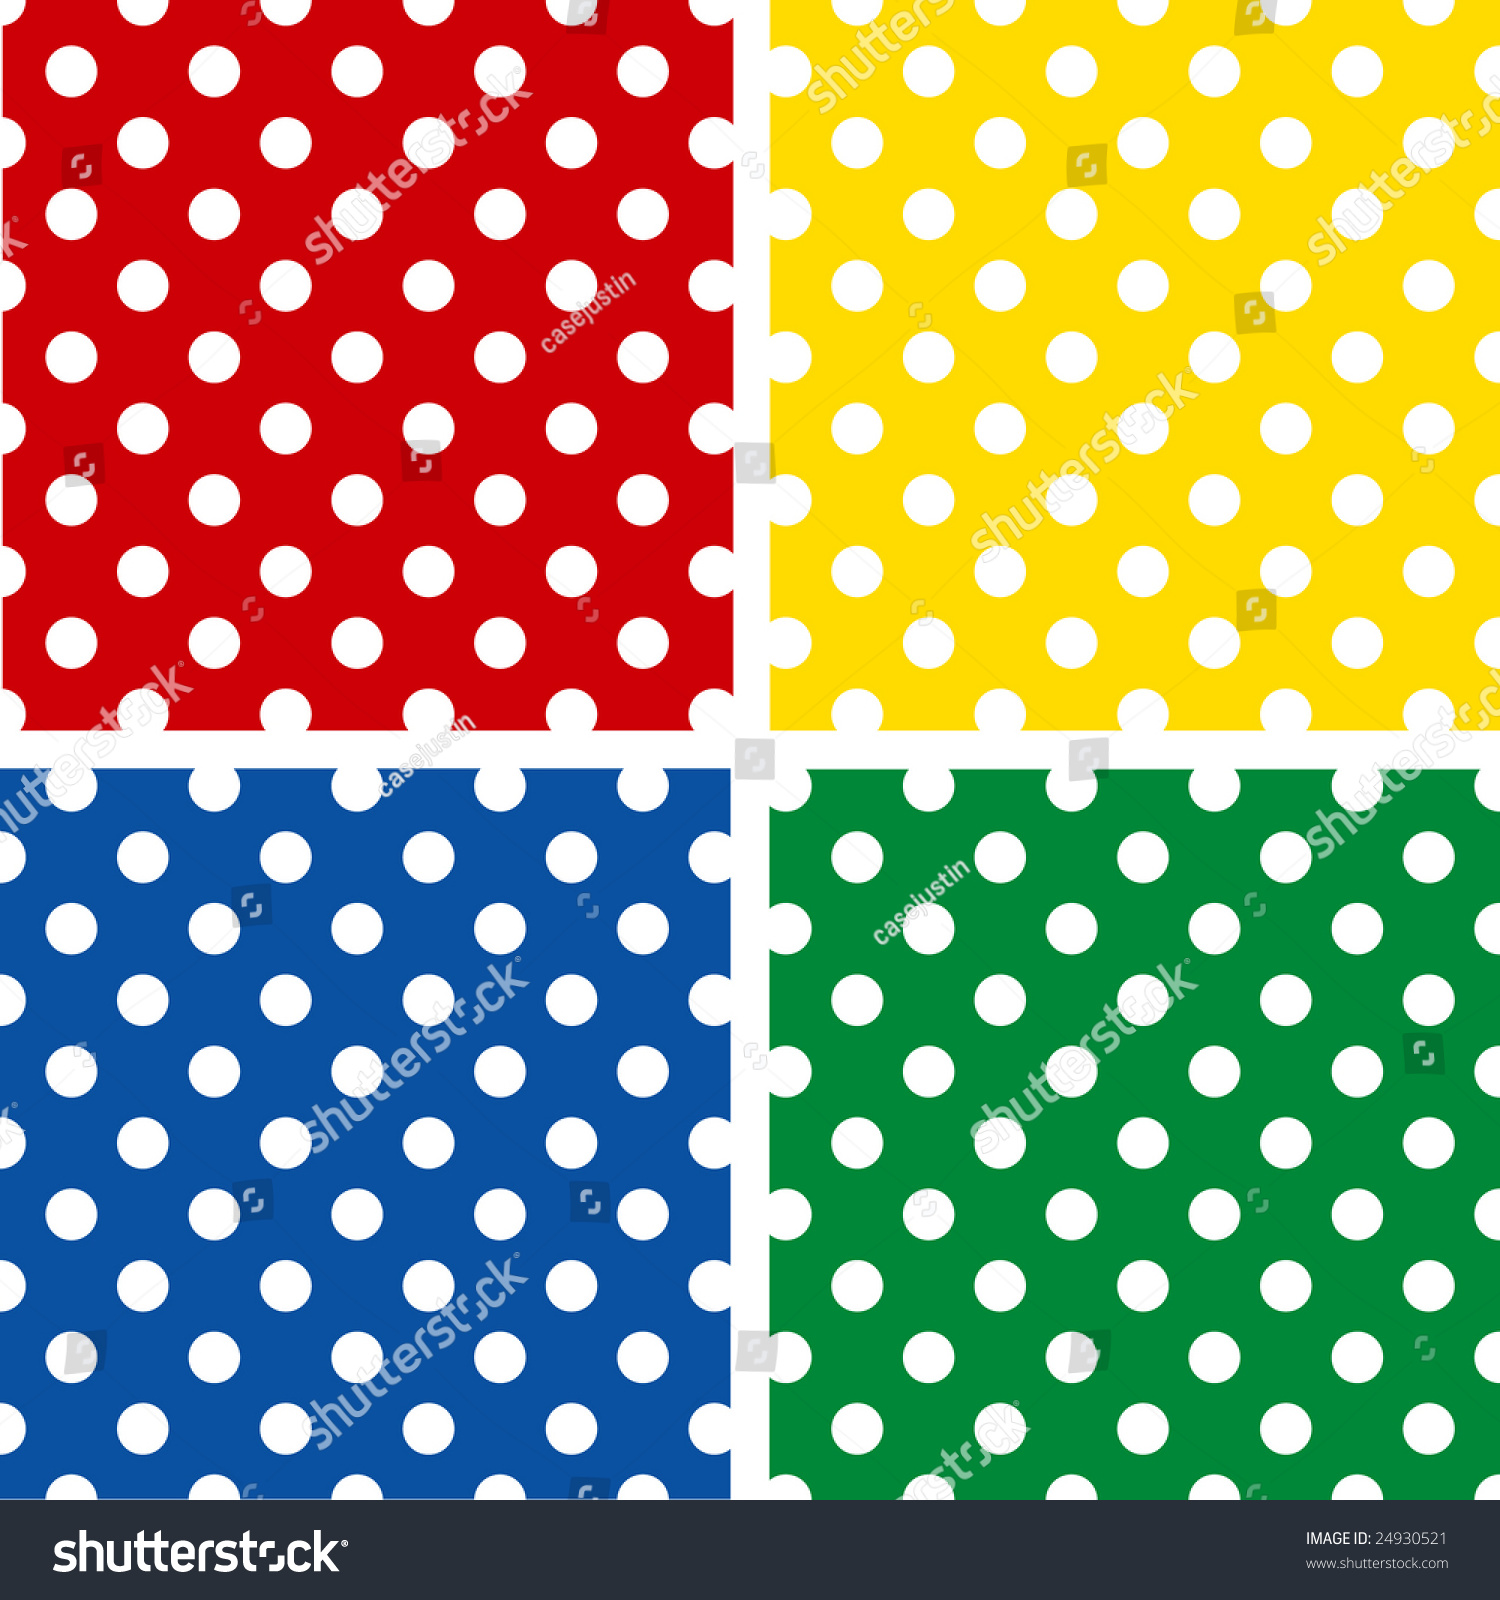 Seamless Pattern Tiles Large White Polka Dots On Red